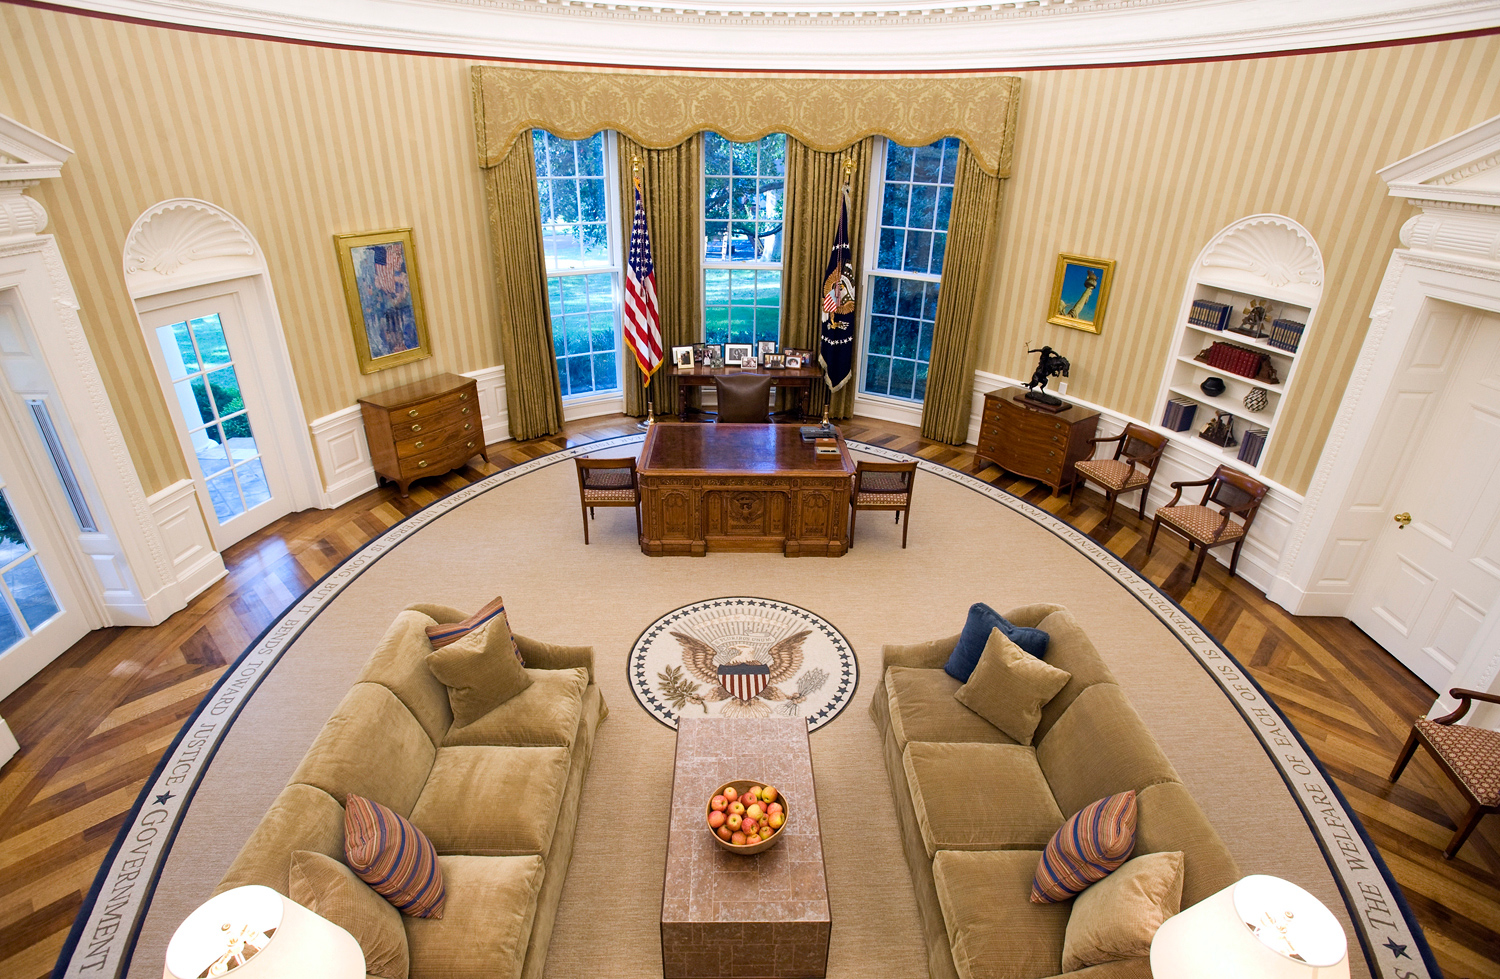 recreating oval office. This Recreating Oval Office